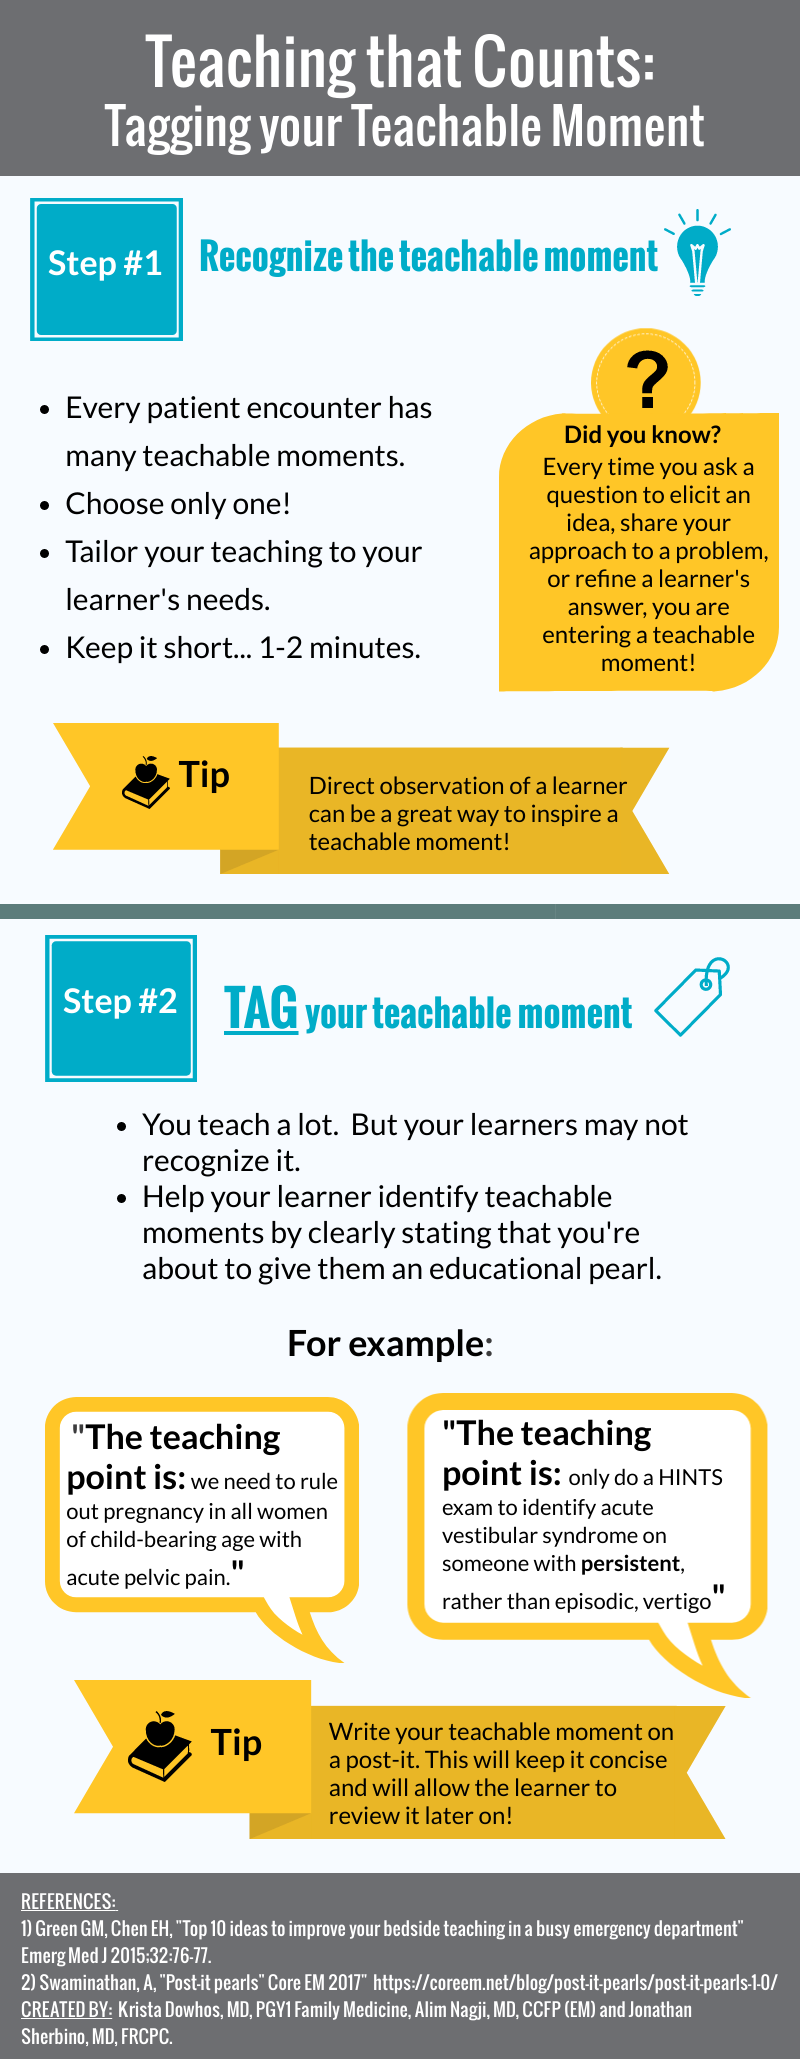 Tagging Your Teachable Moment